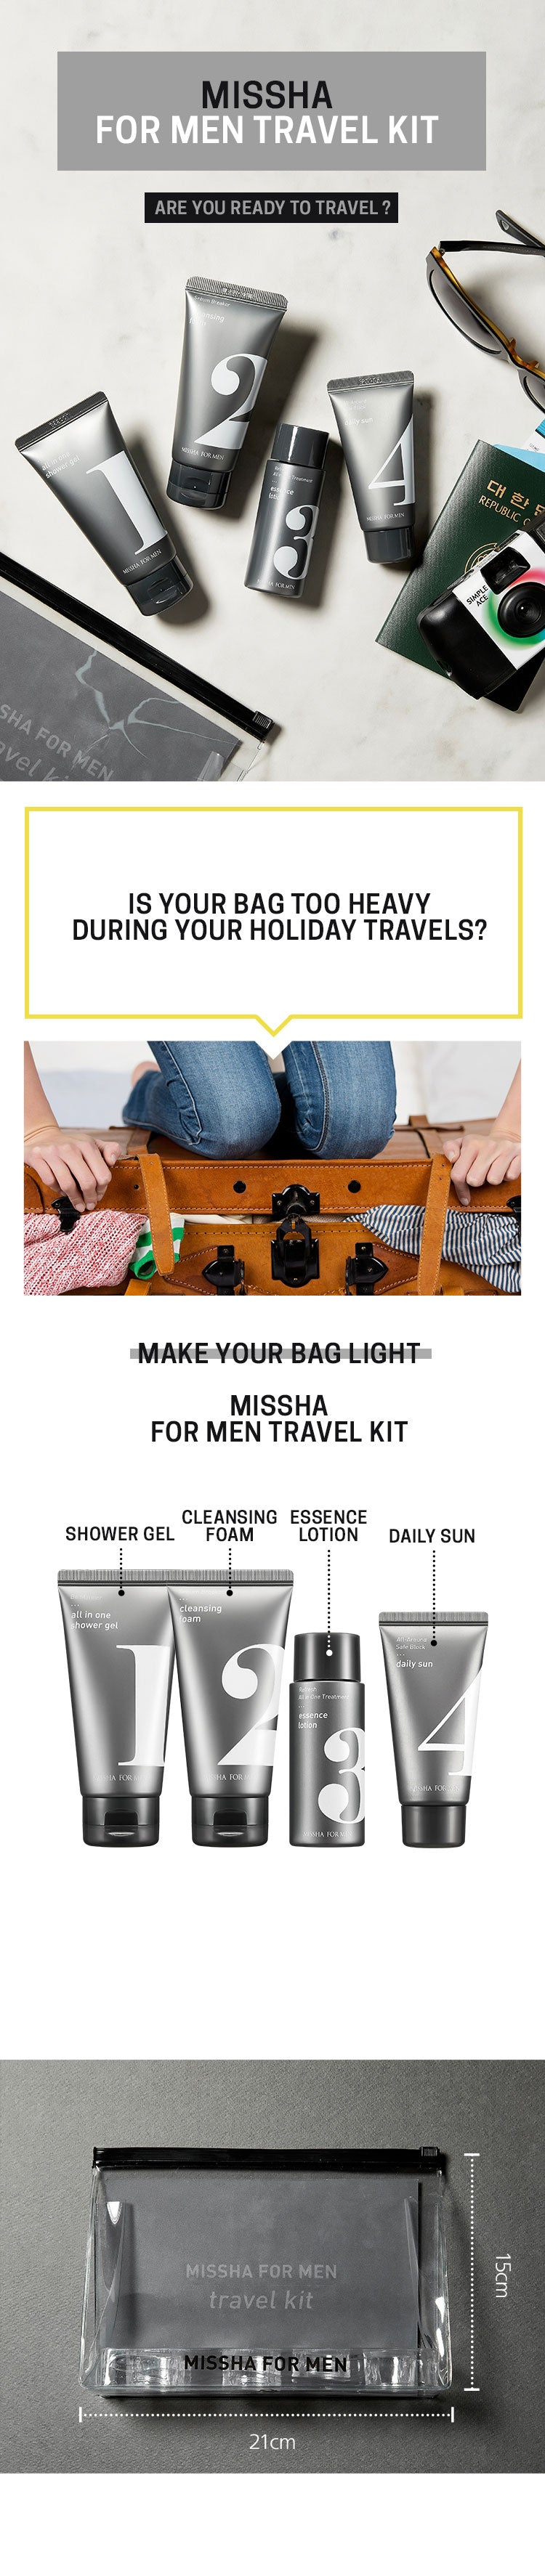 FOR-MEN-MISSHA-TRAVEL-KIT.jpg